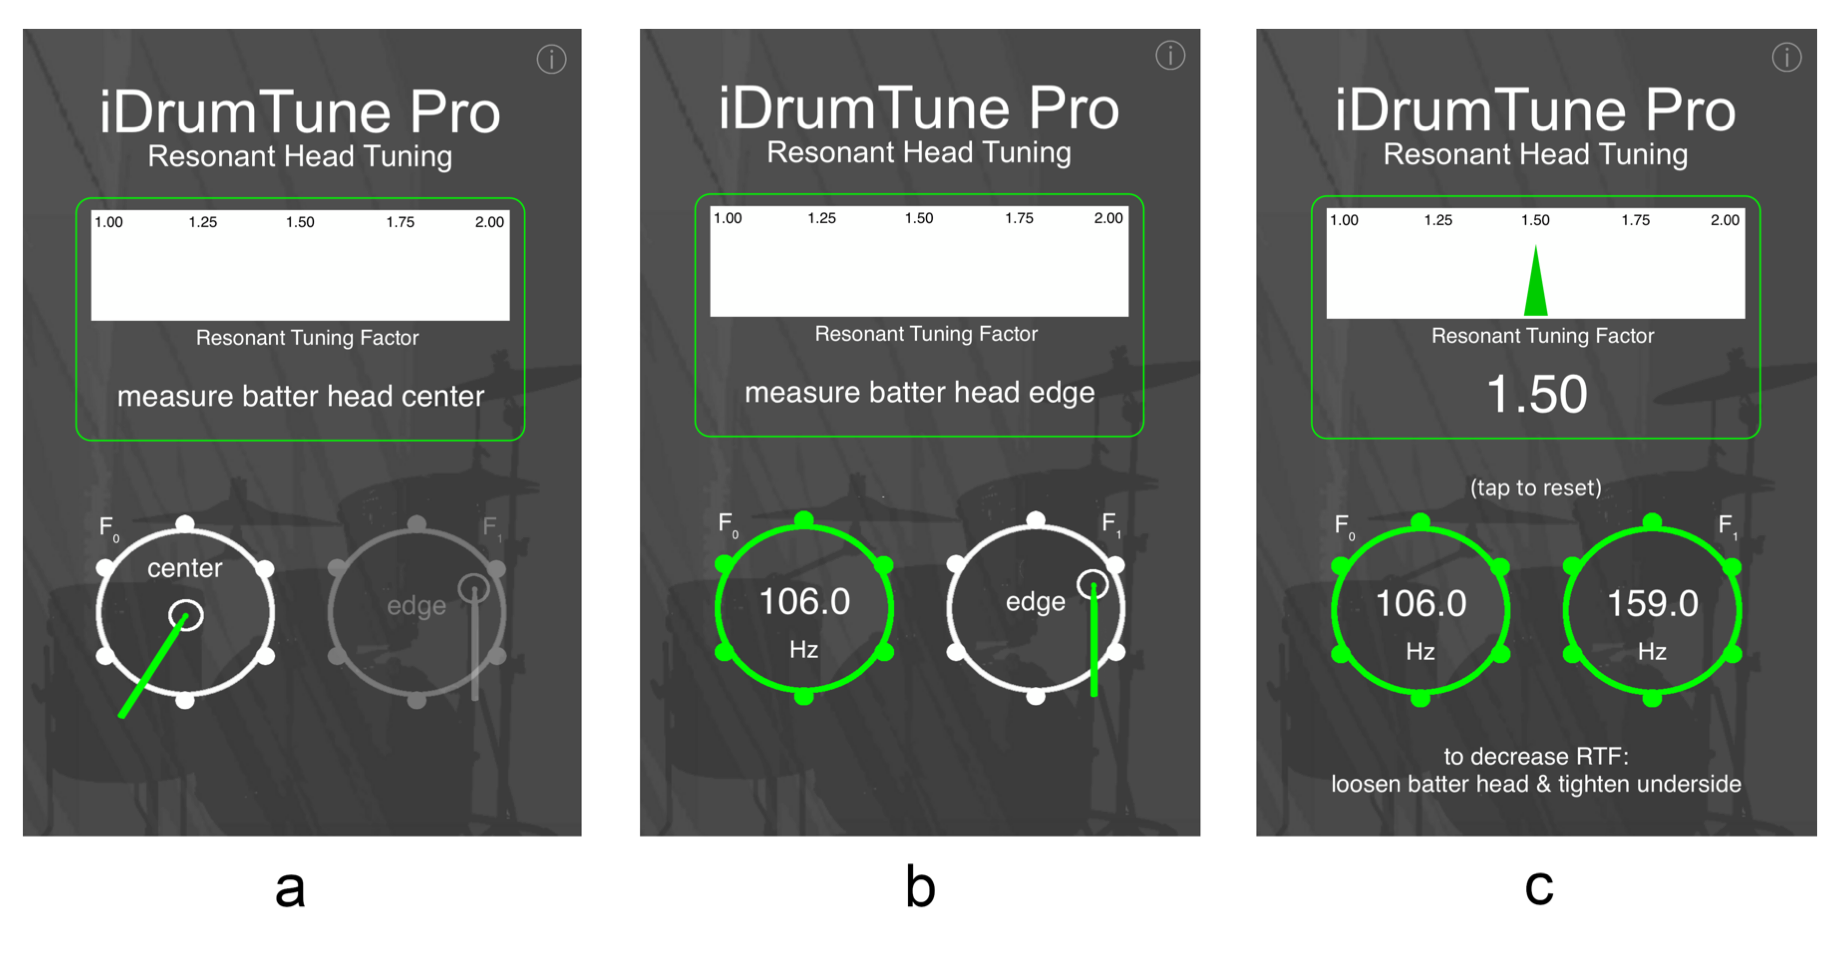 Figure 5.4. iDrumTune's Resonant Tuning feature used to calculate RTF values for a drum